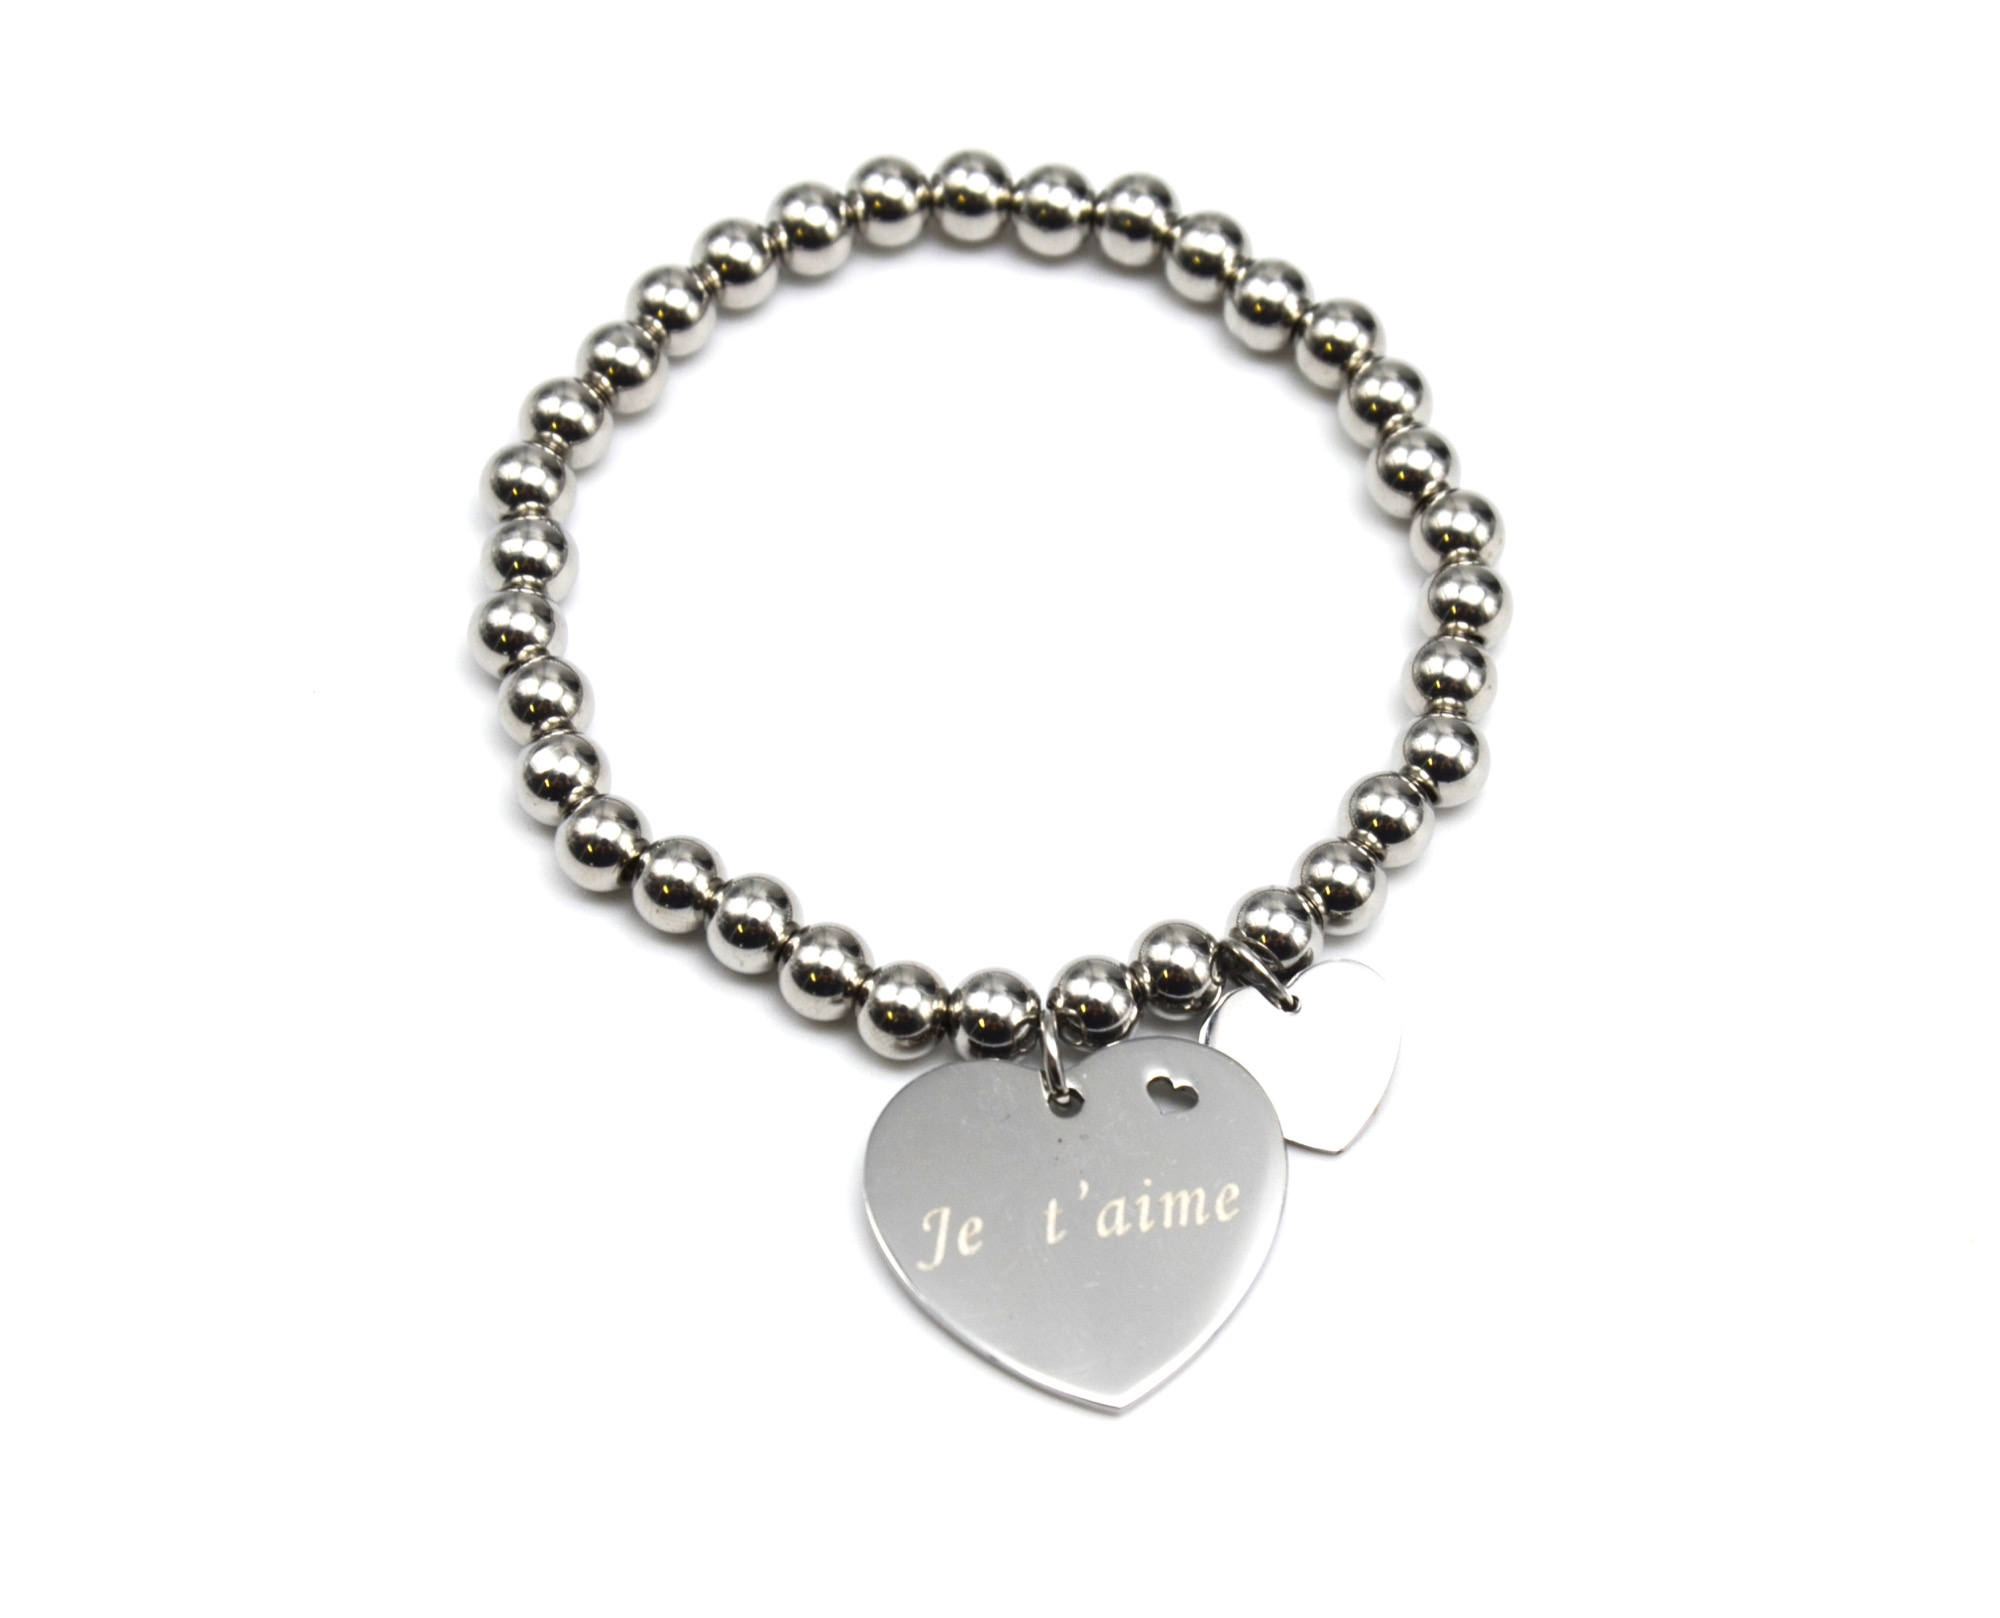 bc1686e bracelet elastique boules avec charm coeur message je t 39 aime acier ebay. Black Bedroom Furniture Sets. Home Design Ideas